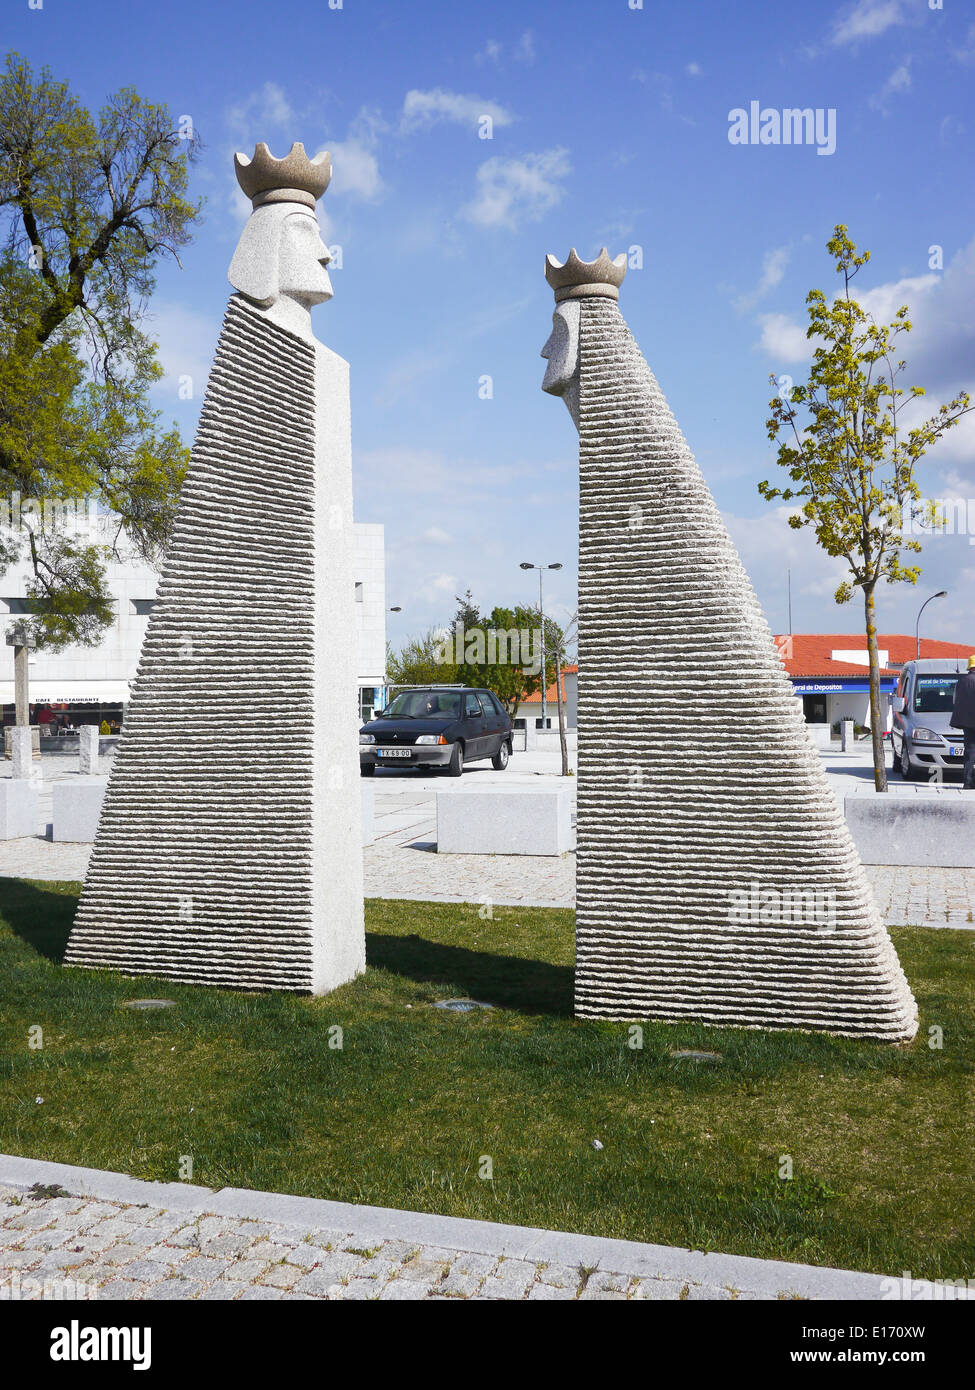 Portugal, the Beira Alta, Trancoso, modern sculpture of Chess king and queen - Stock Image